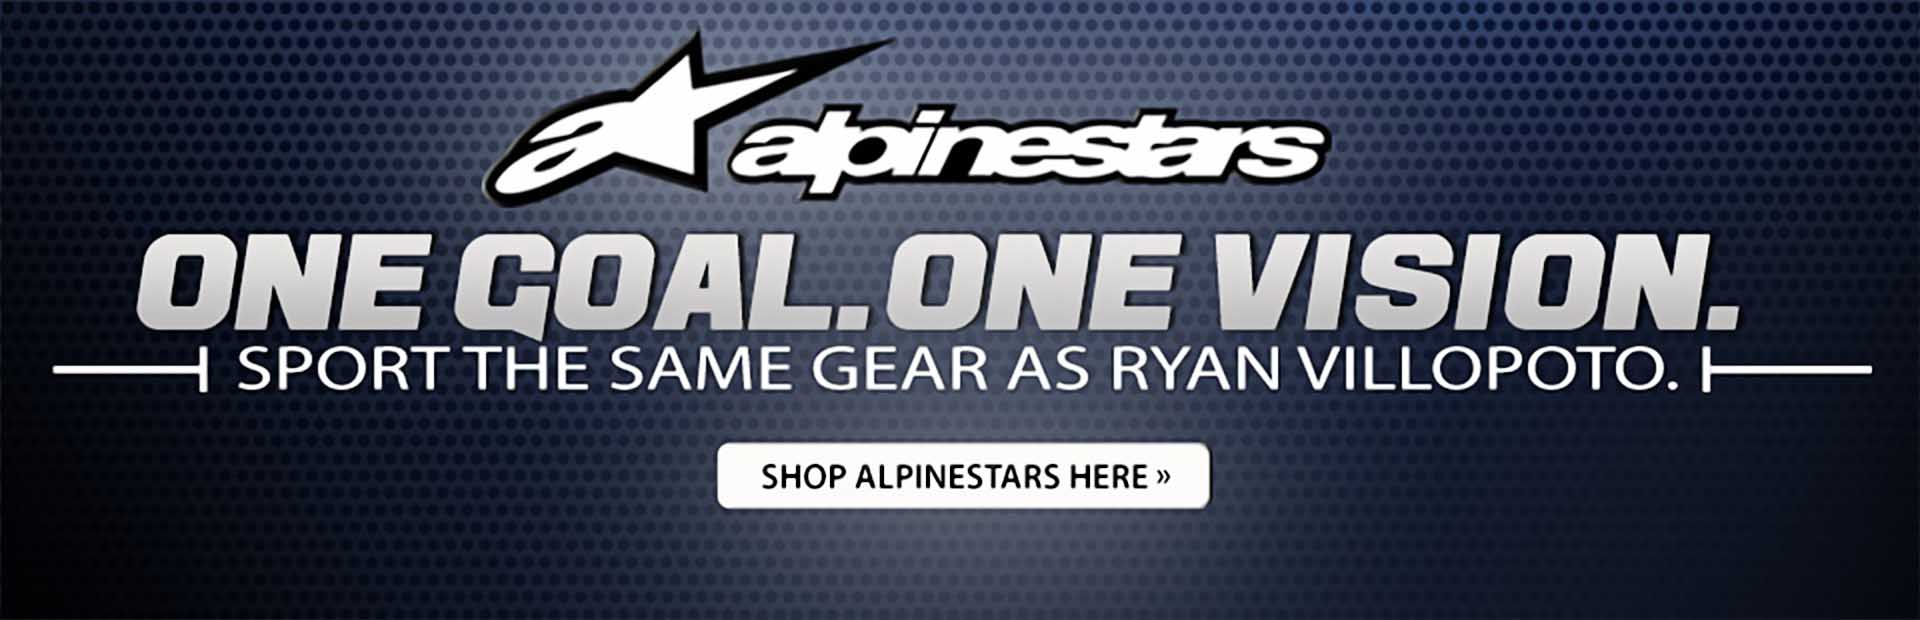 Alpinestars: One goal, one vision. Sport the same gear as Levi Sherwood. Click here to shop for Alpinestars products.